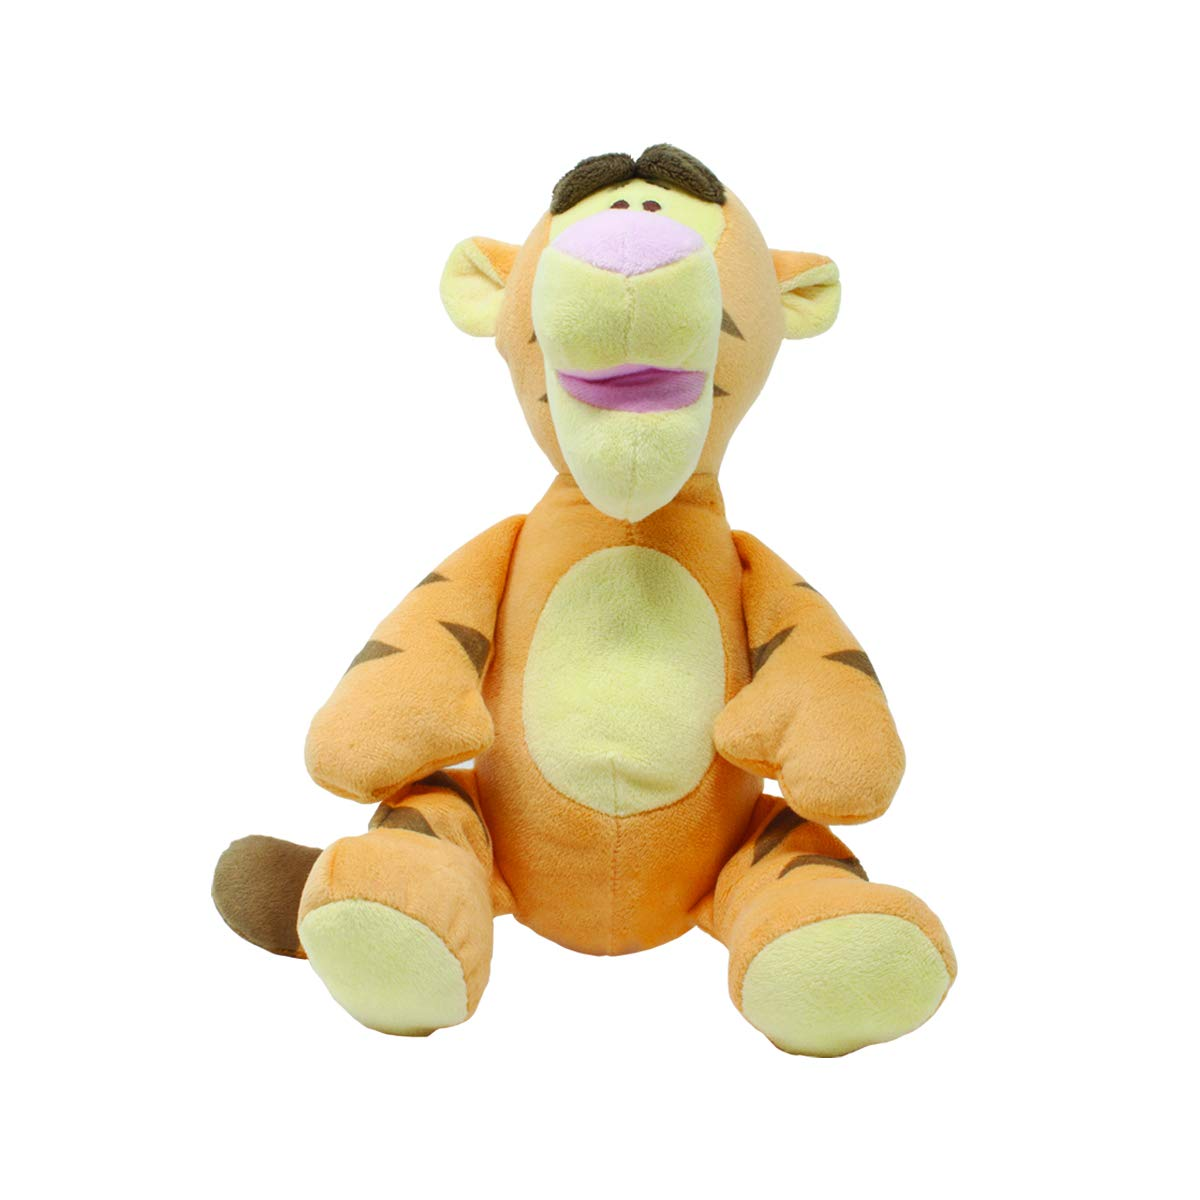 dd438c548cb9 Amazon.com  Disney Baby Winnie the Pooh   Friends Small Tigger Stuffed  Animal